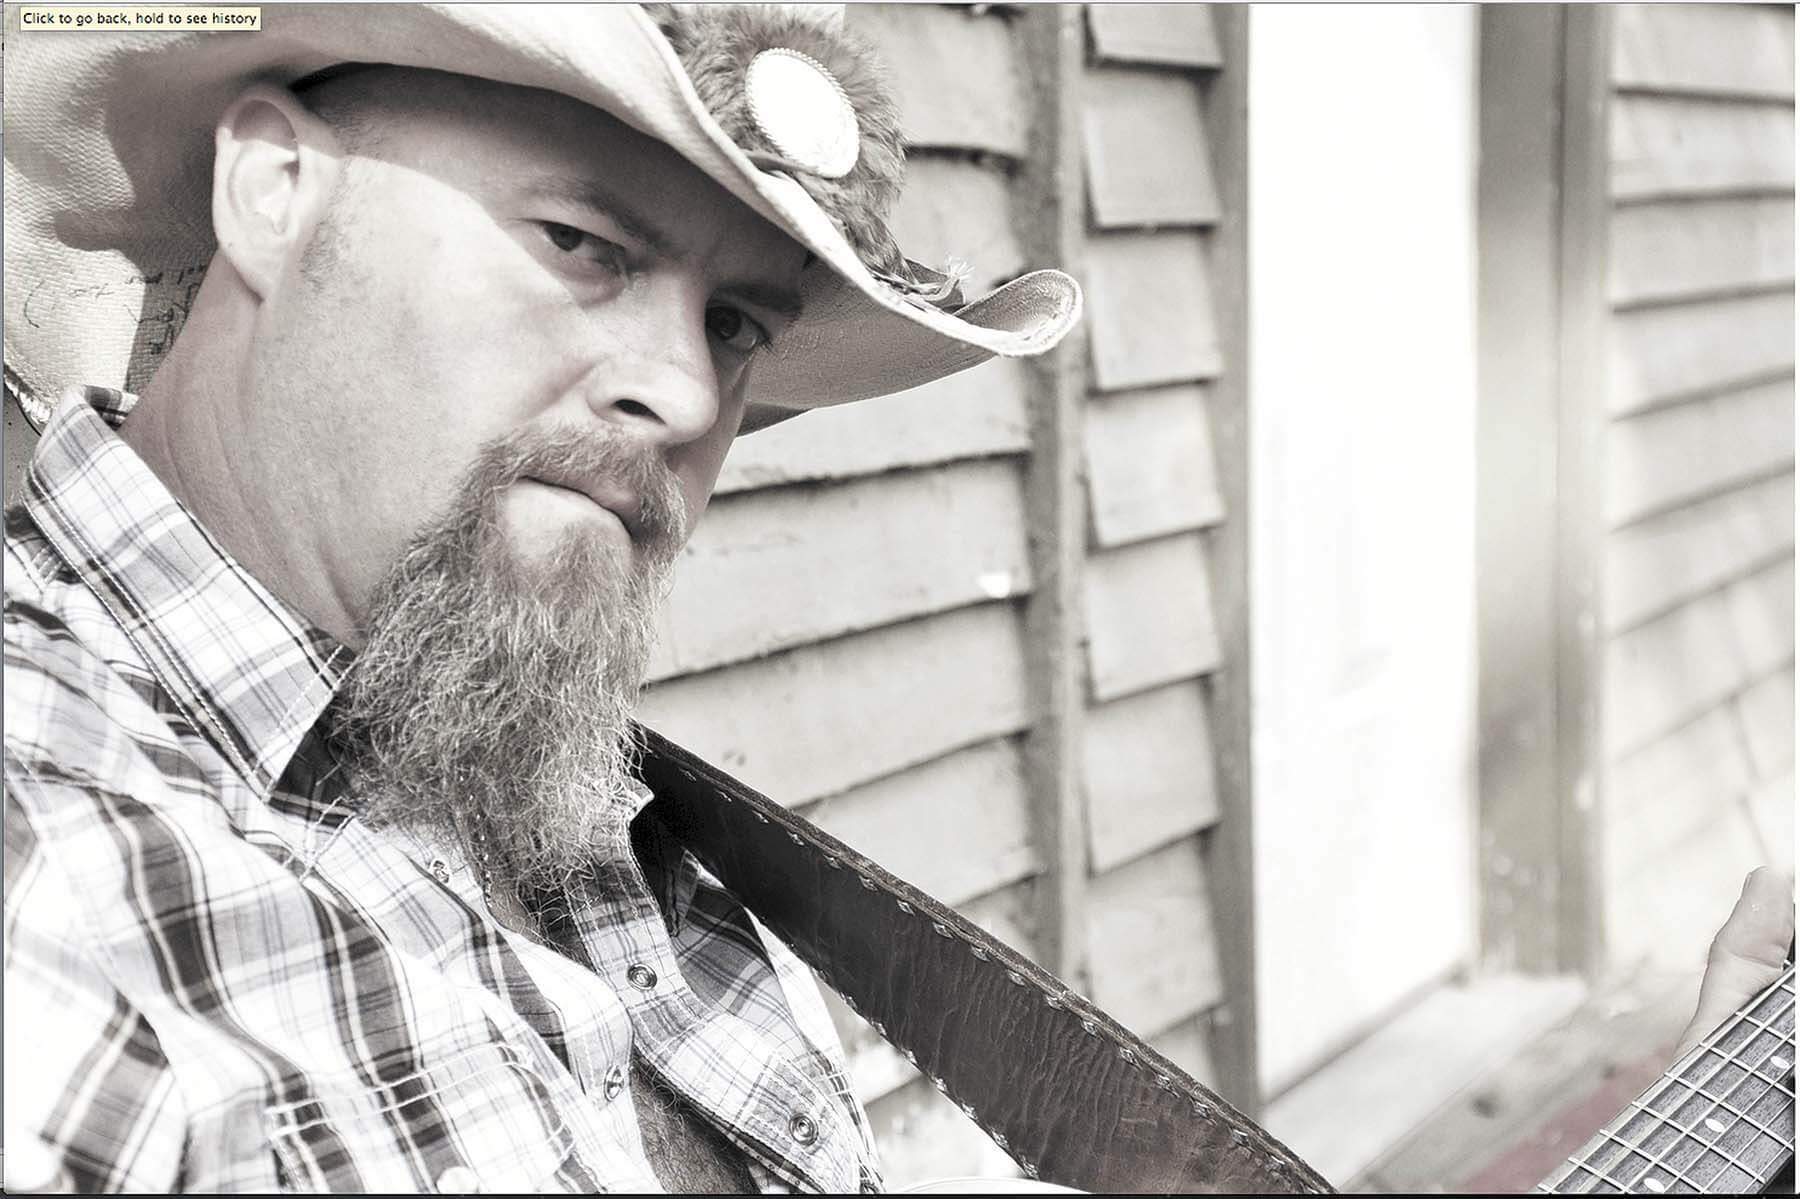 Musician Wayne Mills leaves behind devastated fans and friends